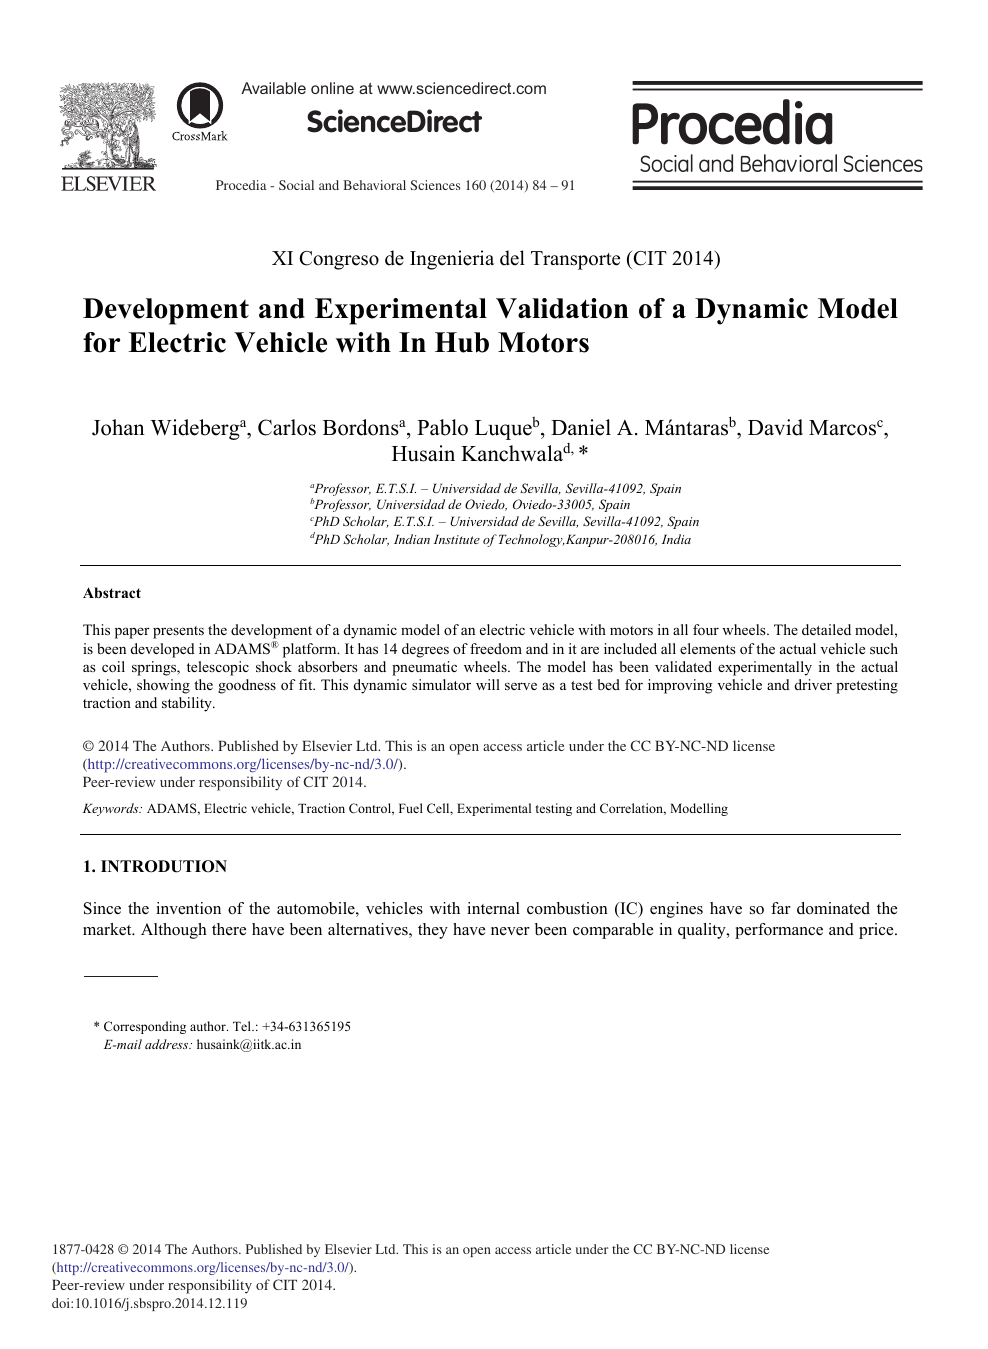 Development and Experimental Validation of a Dynamic Model for